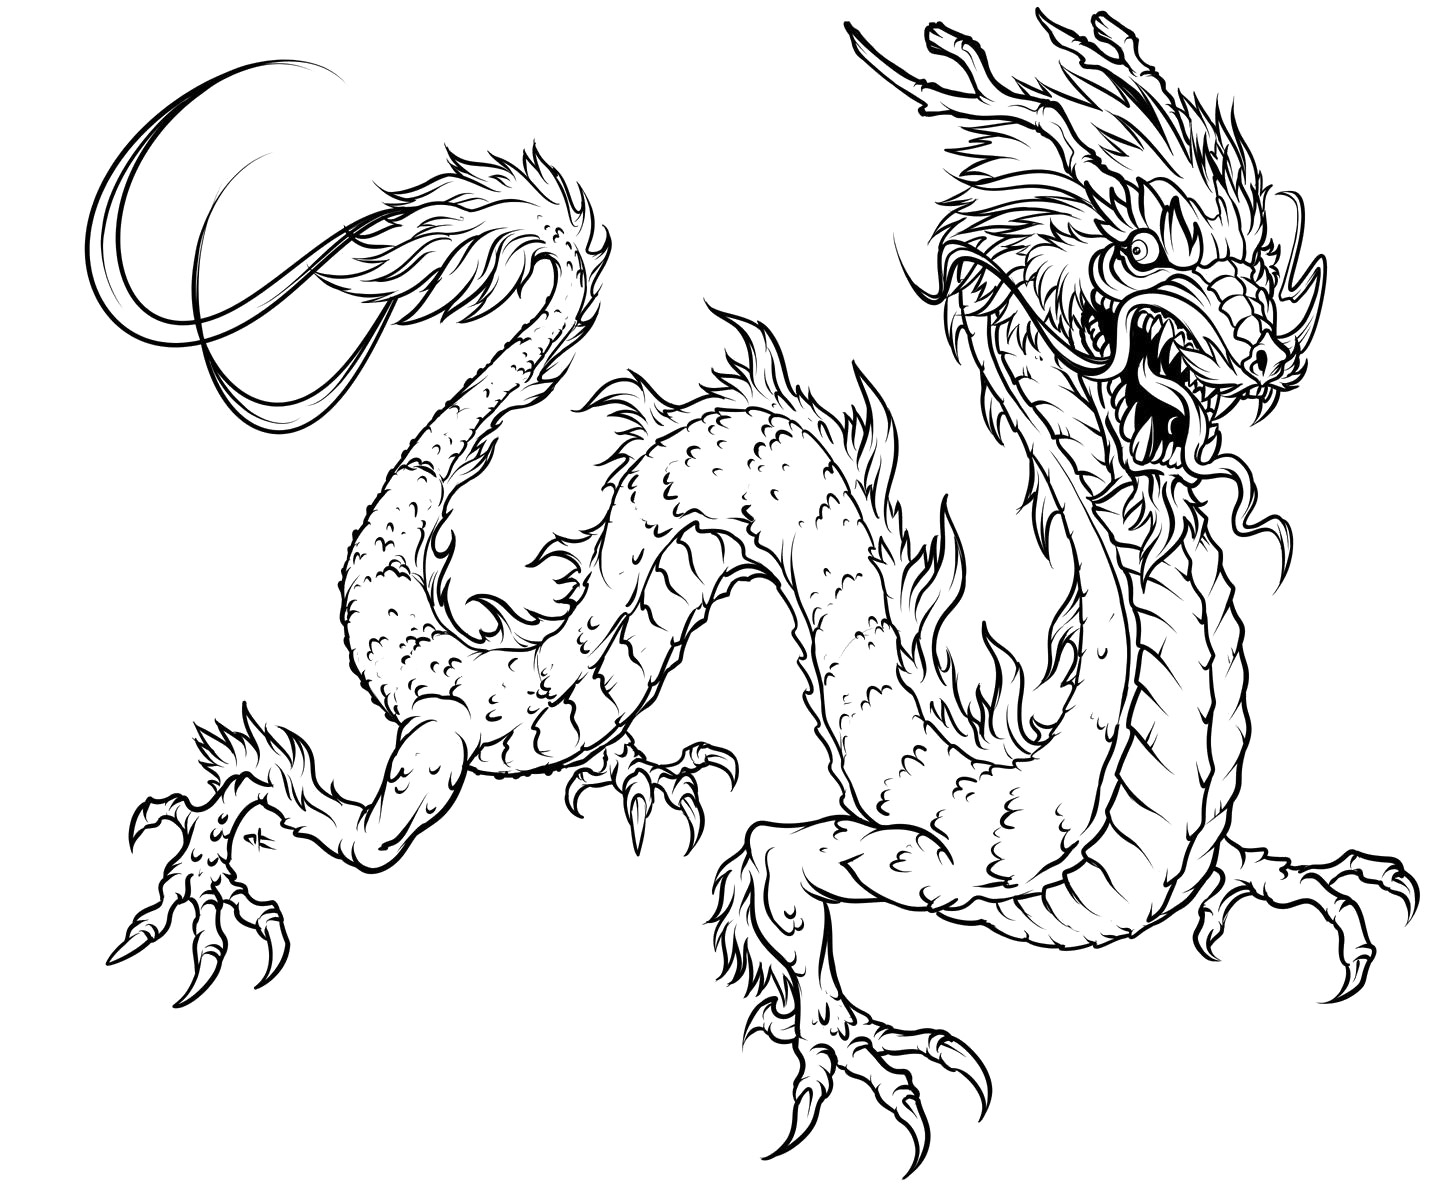 dragon pictures to color and print chinese dragon coloring pages to download and print for free color pictures print dragon and to